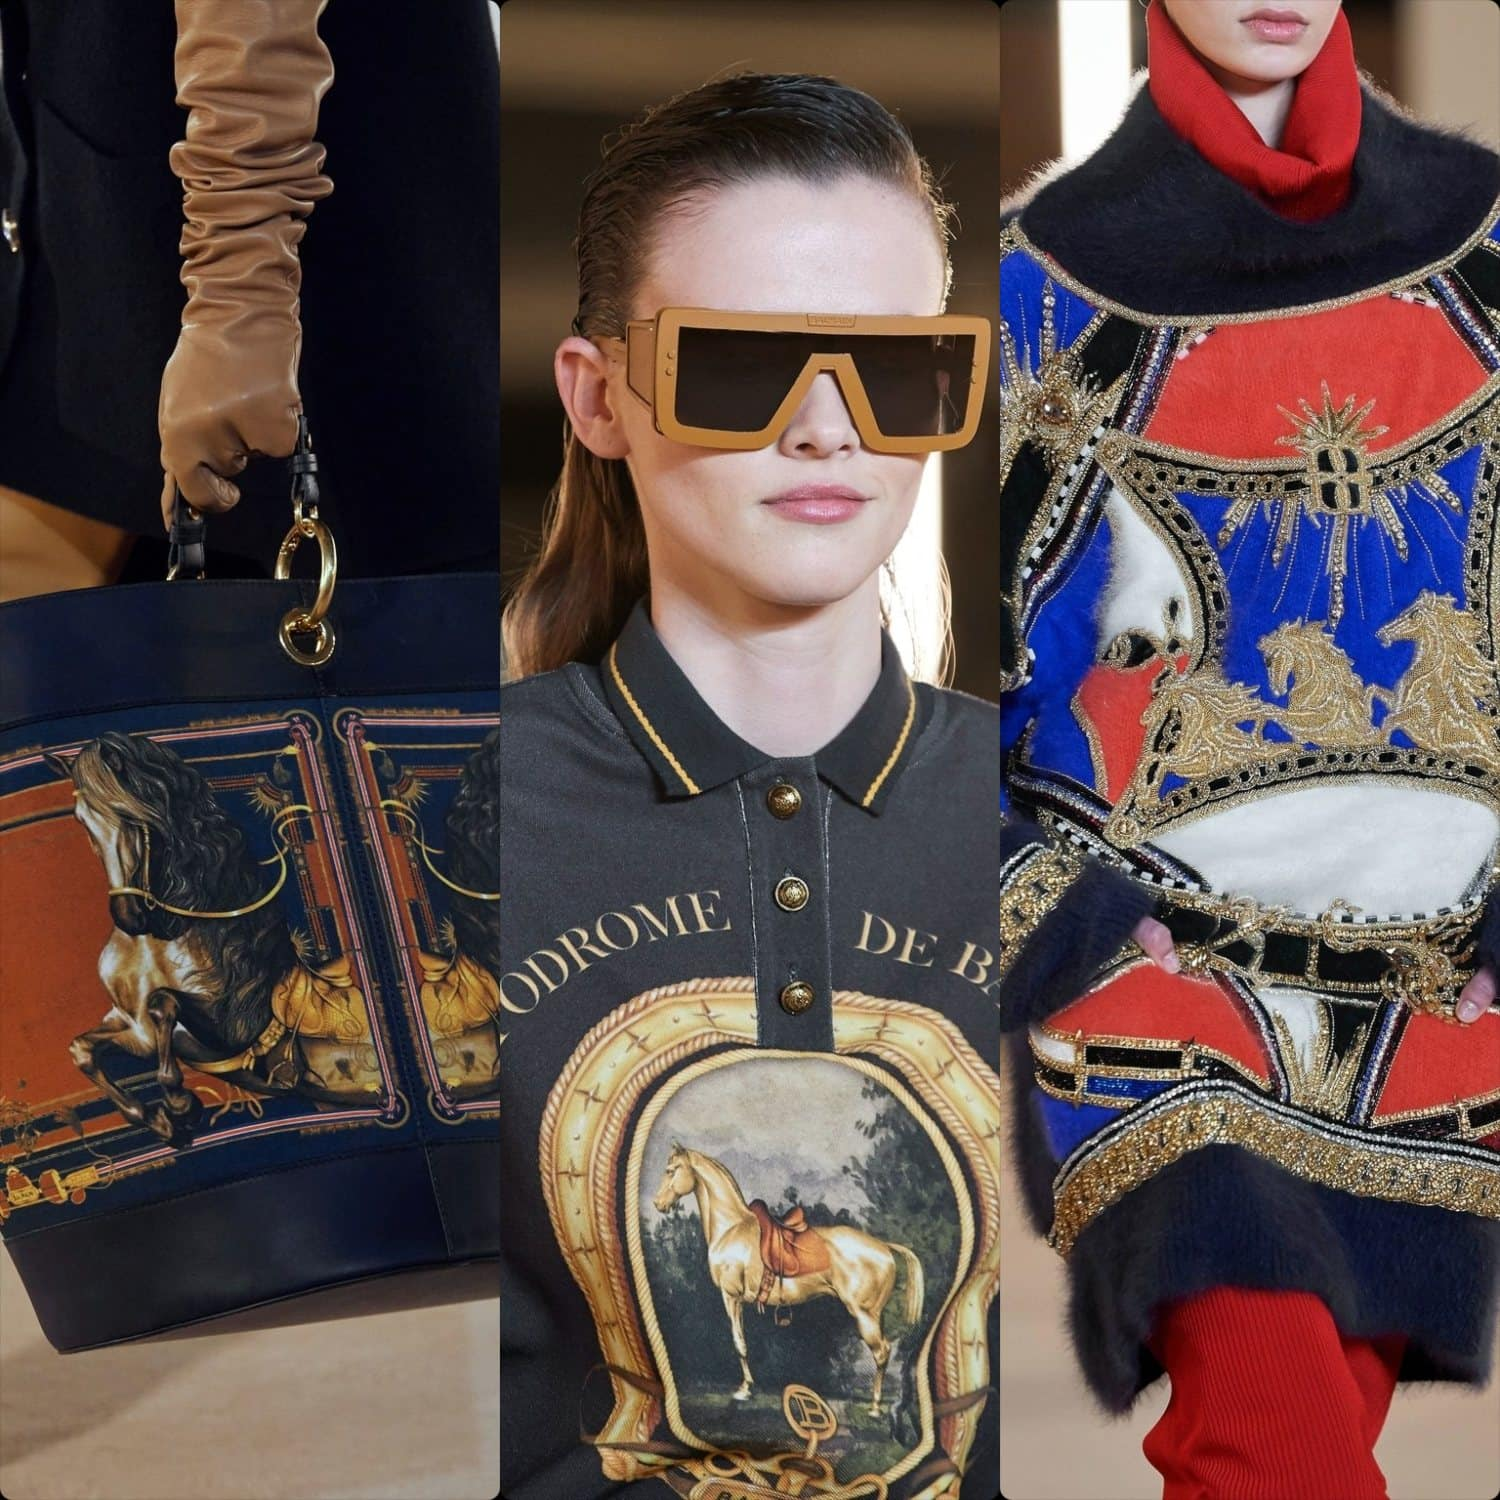 Balmain Fall Winter 2020 -2021 Paris by RUNWAY MAGAZINE